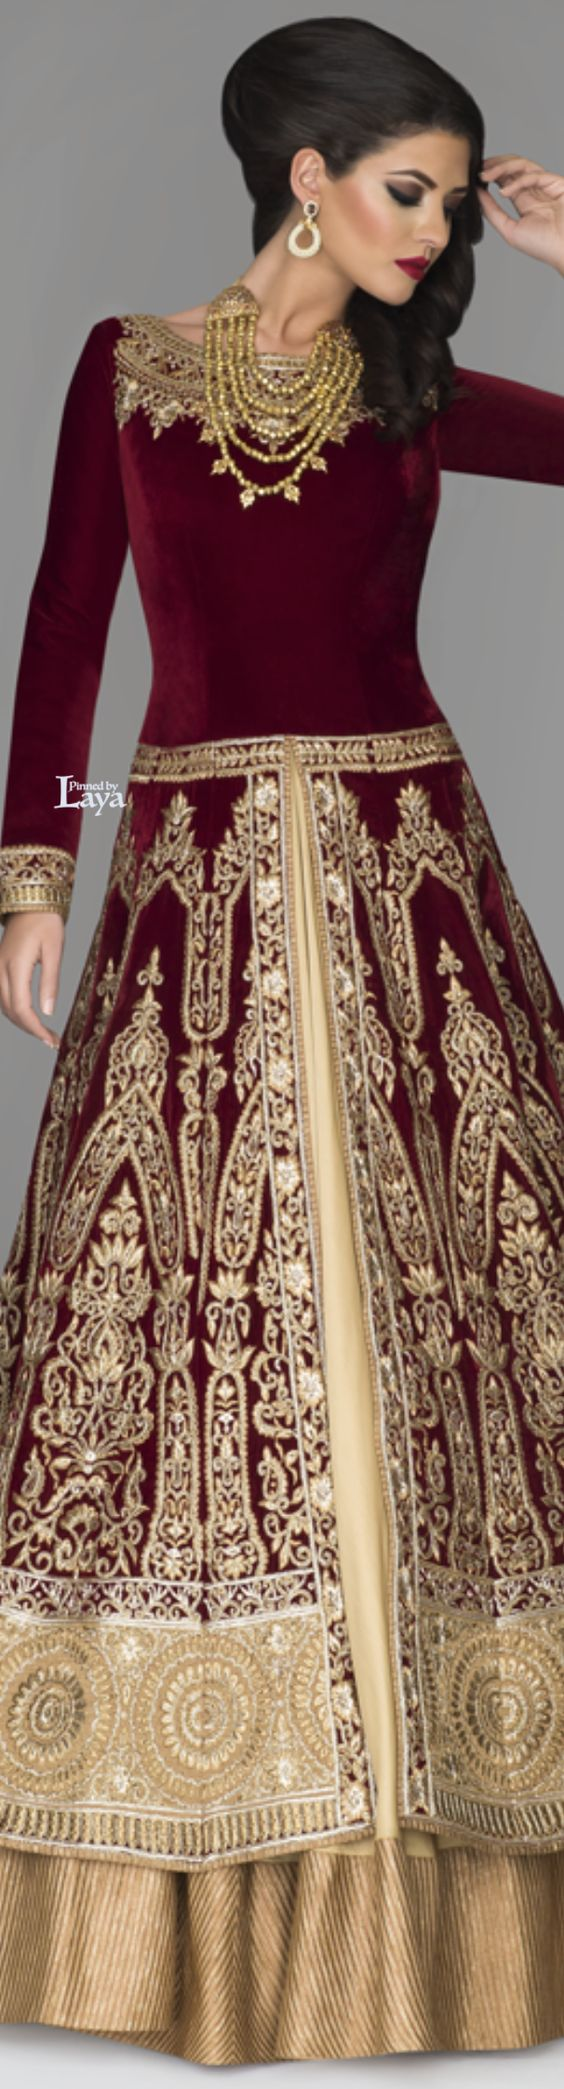 Latest Party Wear & Fancy Wedding Frock Designs Collection 2016-2017 (24)